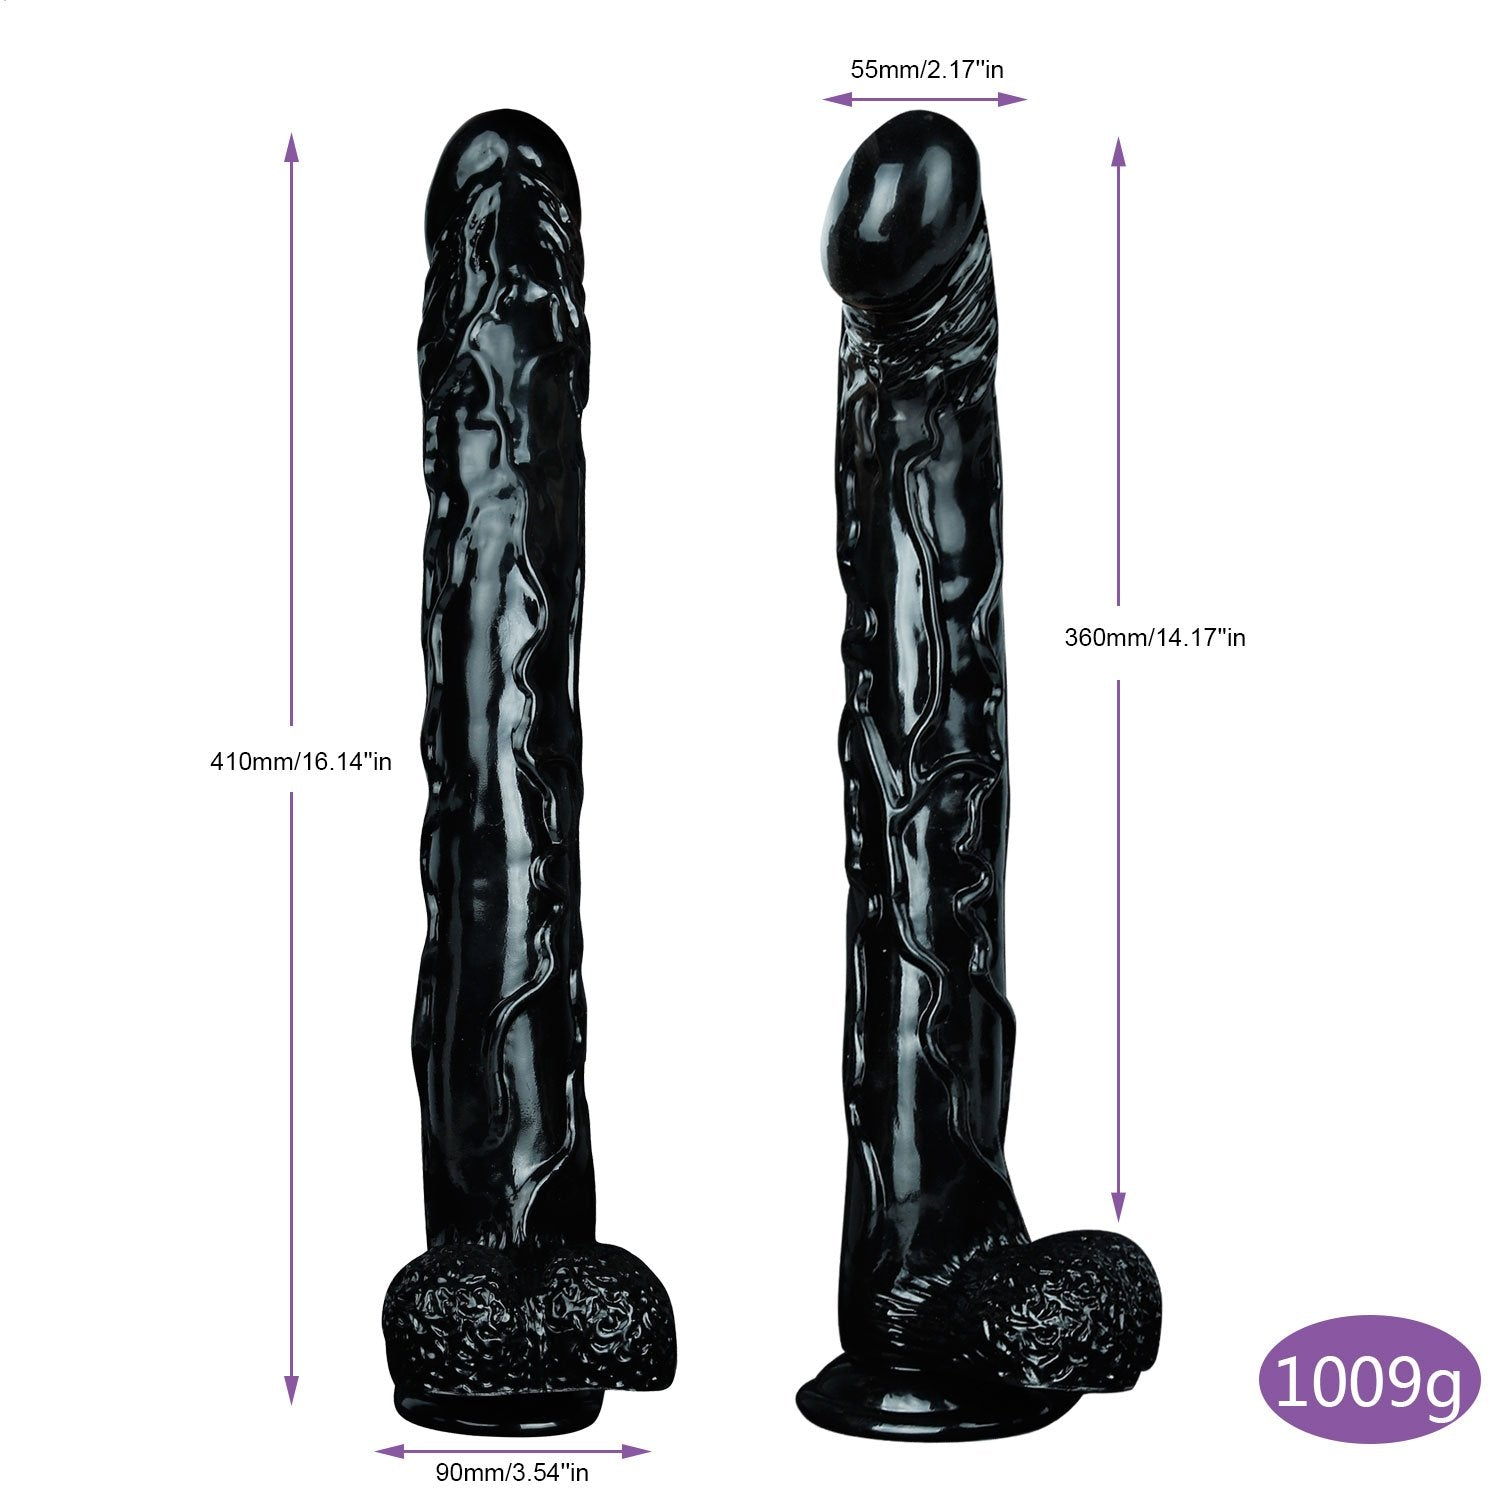 MD Super 41cm Realistic Strap on Dildo Dong Long Size Penis Cock